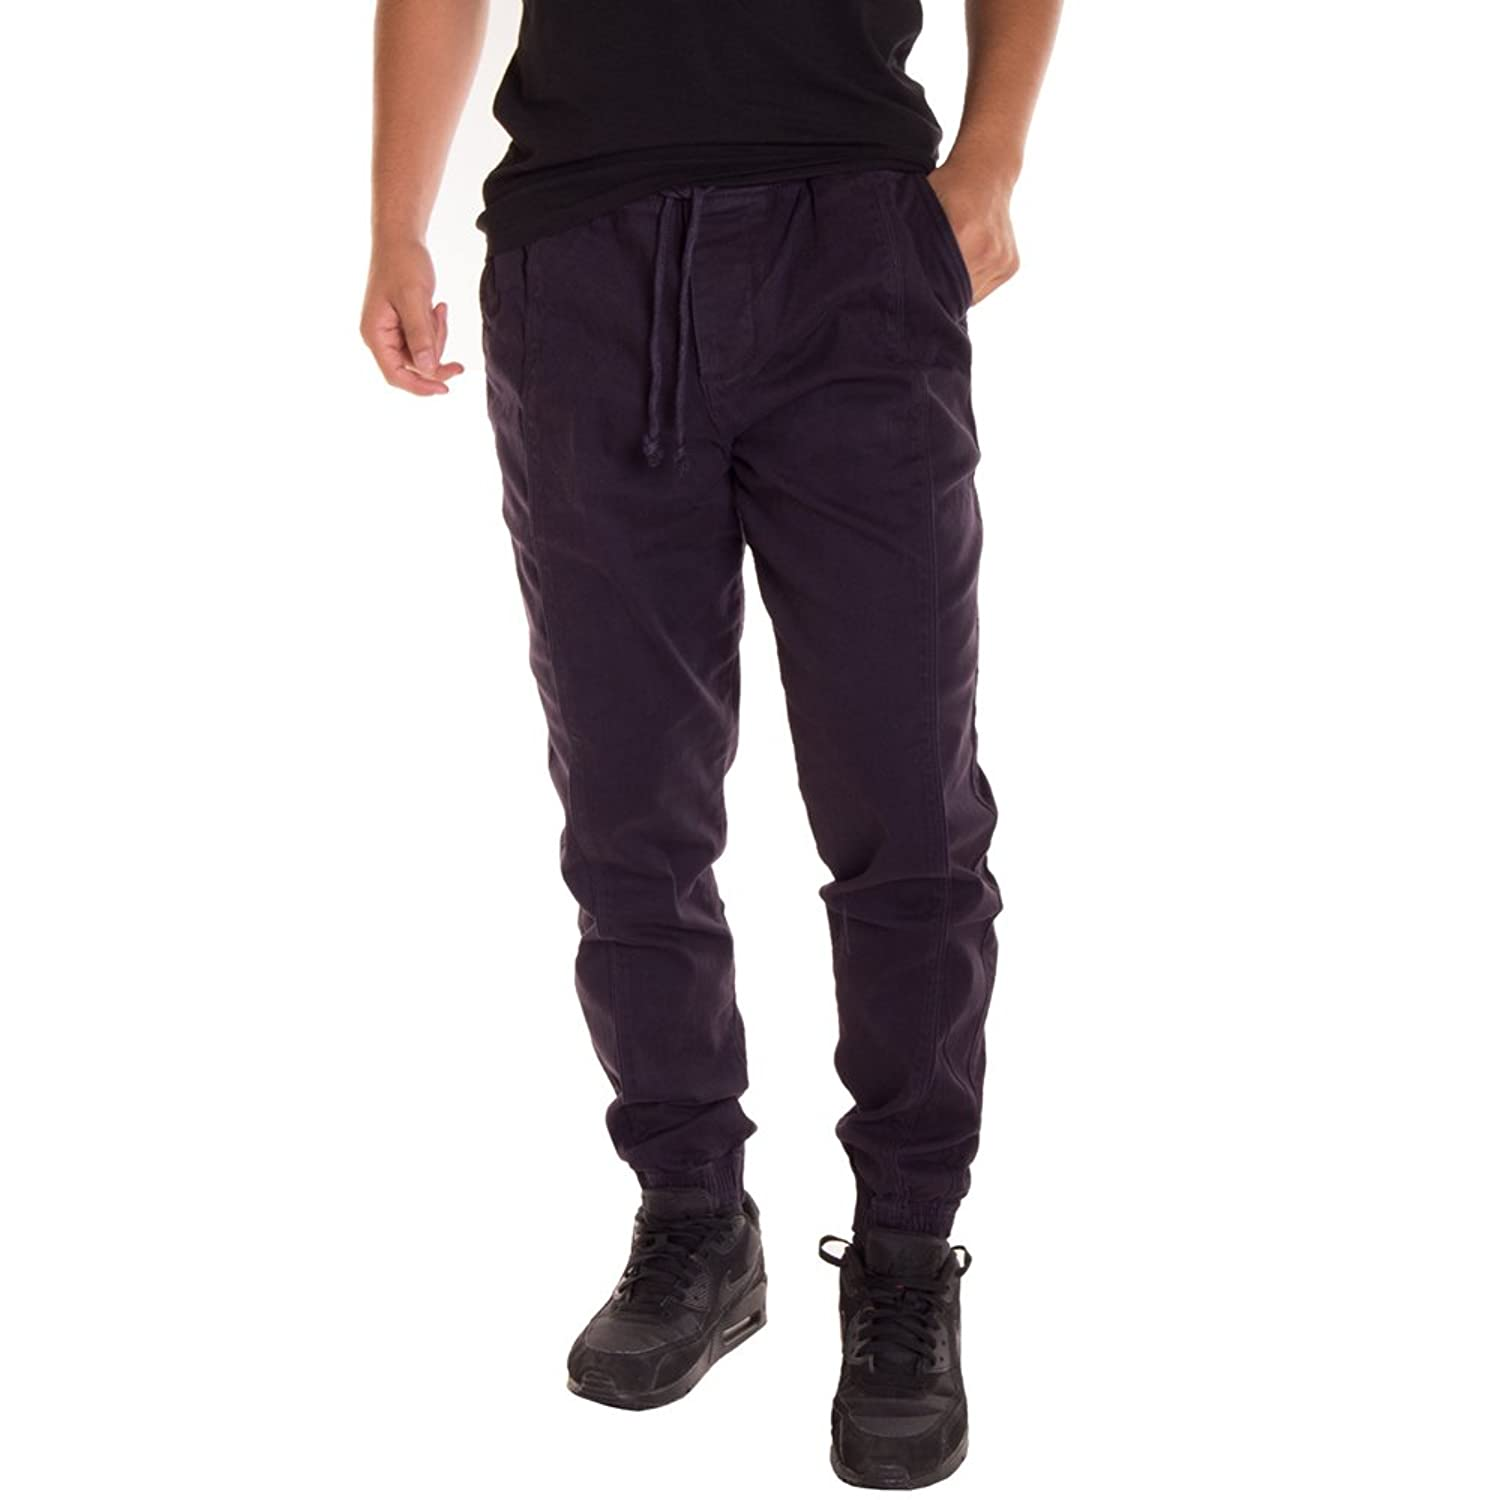 4cb9a1f227 KINDOYO Casual Relaxed Sporthose Leisure Lang Trousers Hose Herren:  Amazon.de: Bekleidung